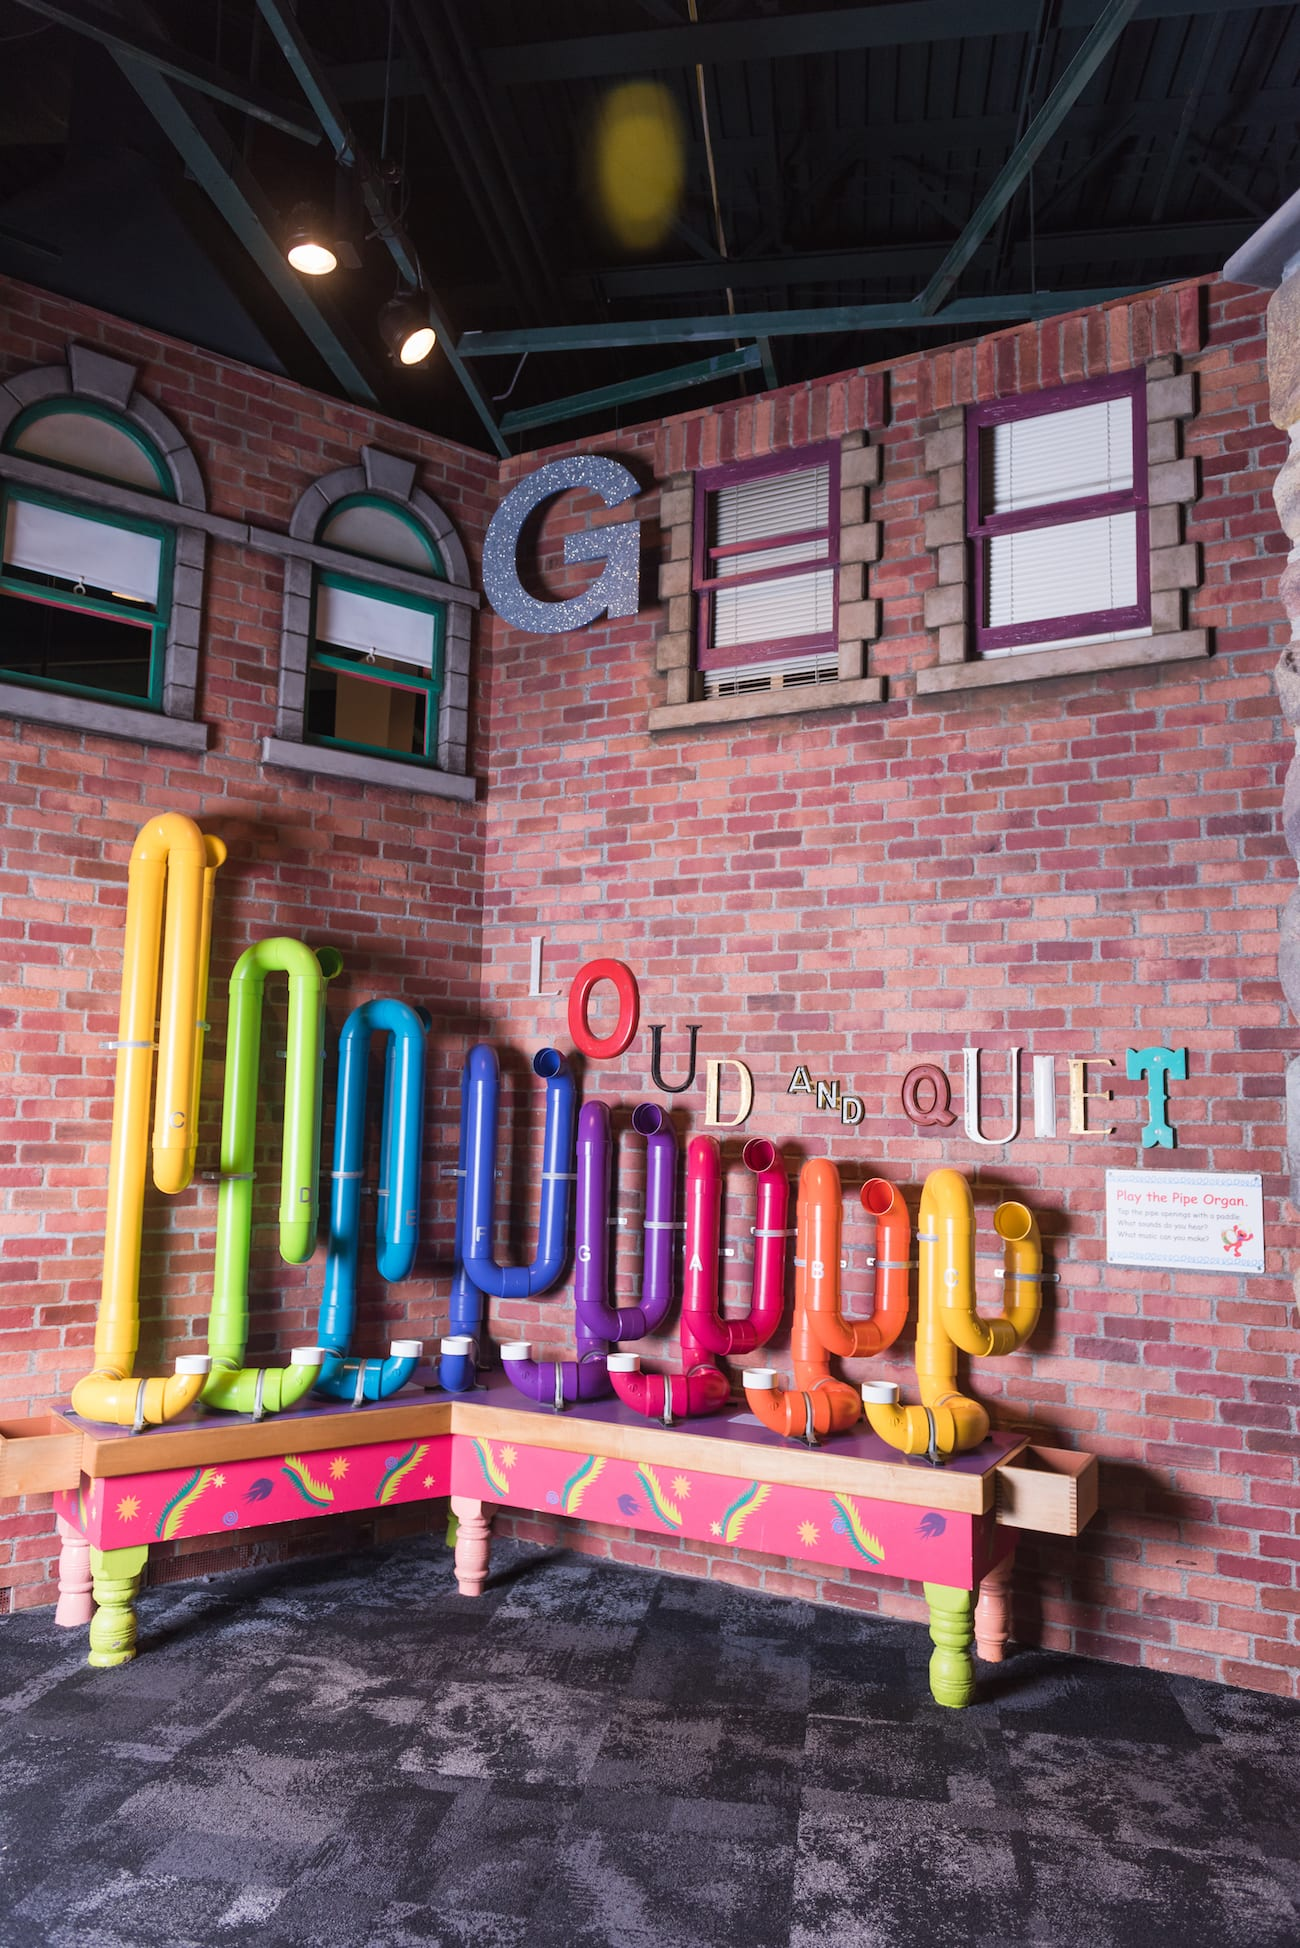 Visiting The Strong National Museum of Play in Rochester, New York with entertaining blog @cydconverse